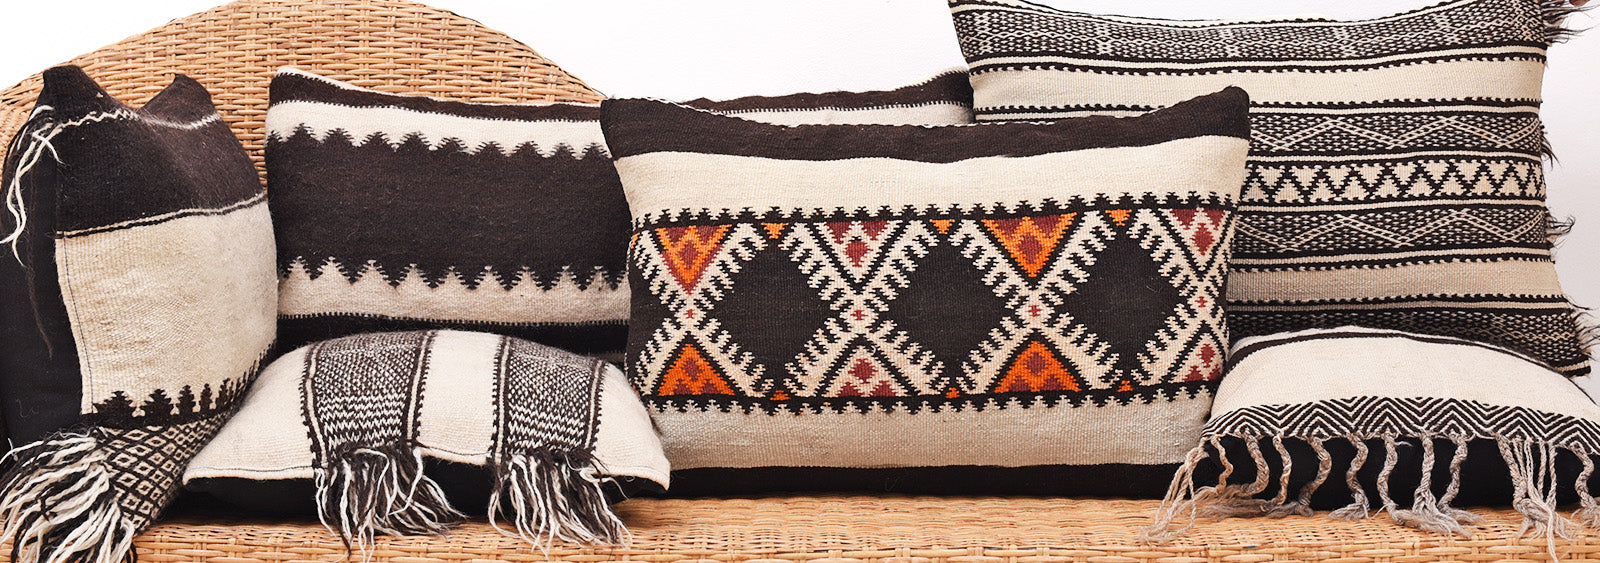 Moroccan Hanbel Shadoui Pillow